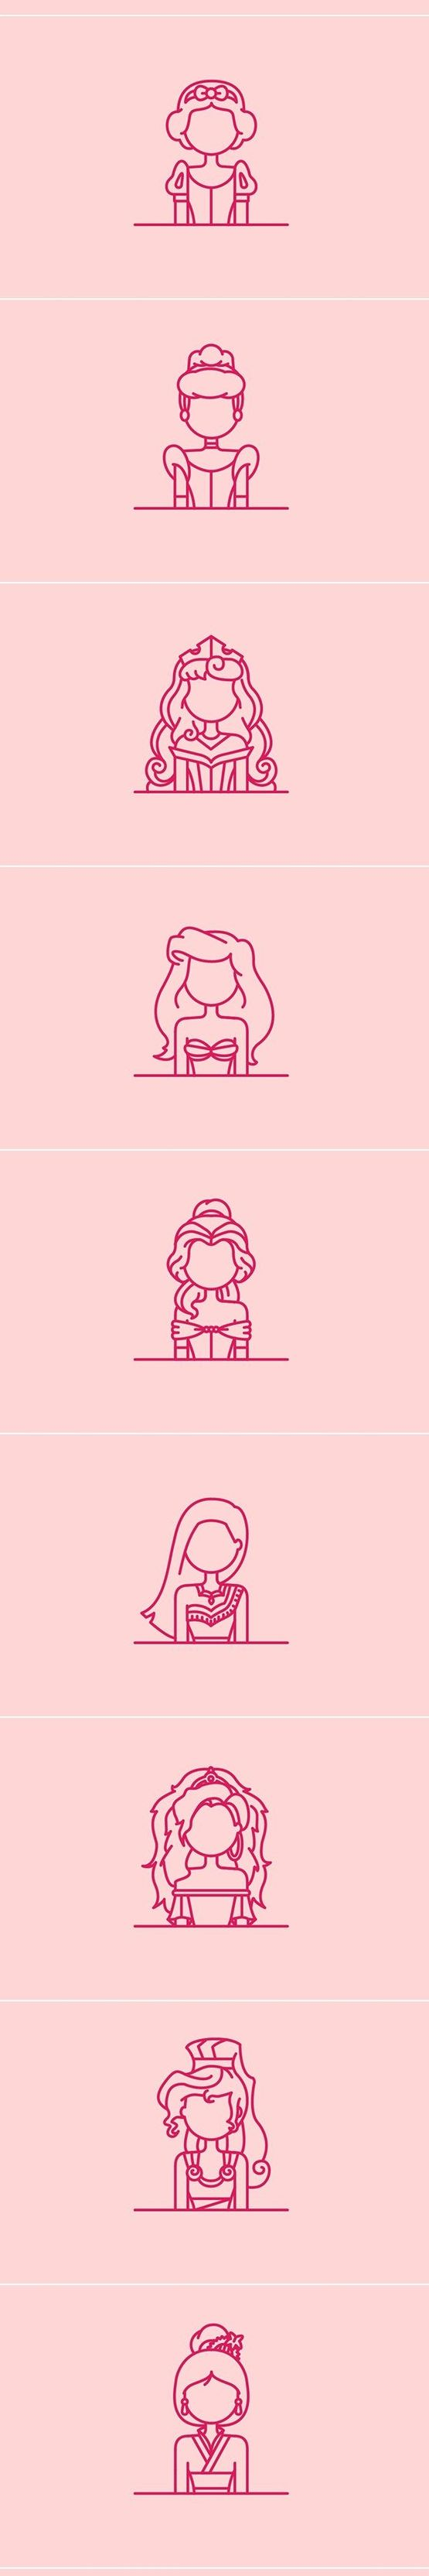 Princesses Disney minimalistes